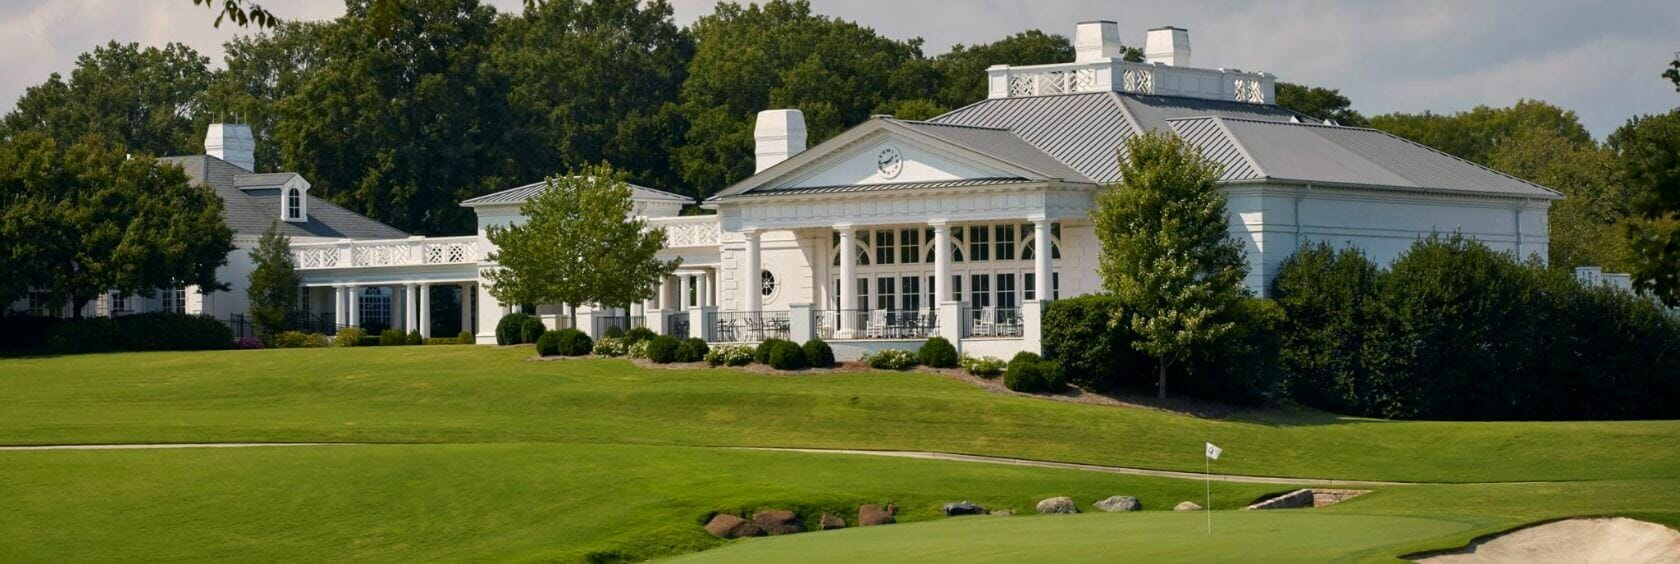 Quail Hollow golf clubhouse in North Carolina